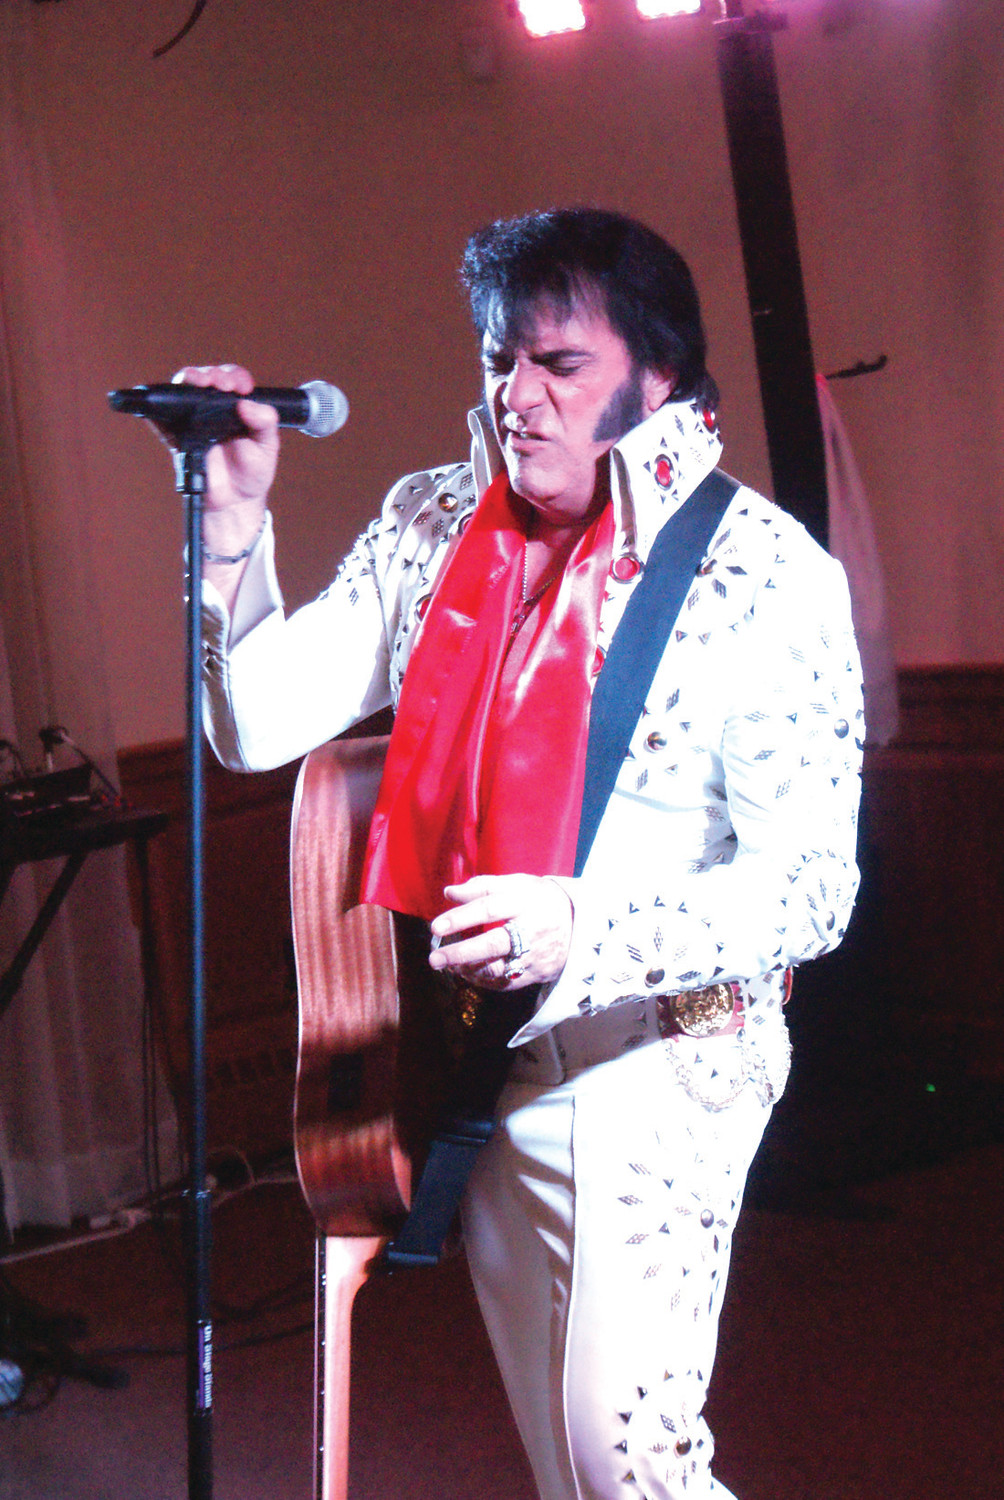 ELVIS ON STAGE:  Headlining the event was Robert Black as Elvis who is New England's premier award-winning Elvis Tribute Artist and performs nationwide. He performed for 90 minutes with back-to-back Elvis blockbusters which the audience enjoyed and some audience members could not help but to sing along.